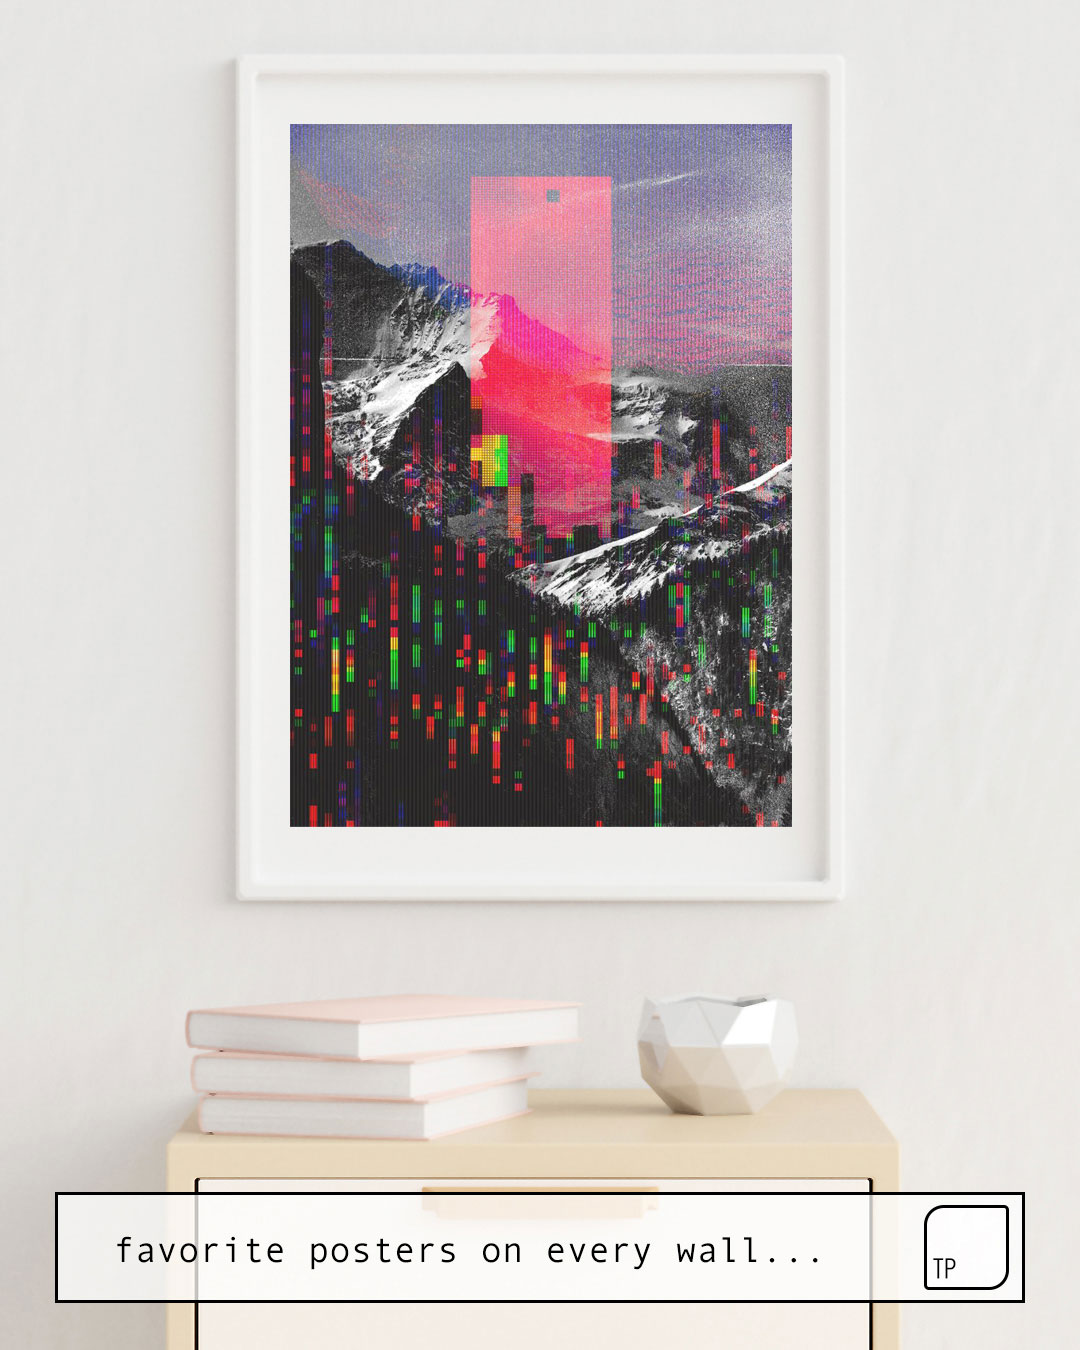 The photo shows an example of furnishing with the motif MOUNTAIN GLITCH II by Andreas Lie as mural